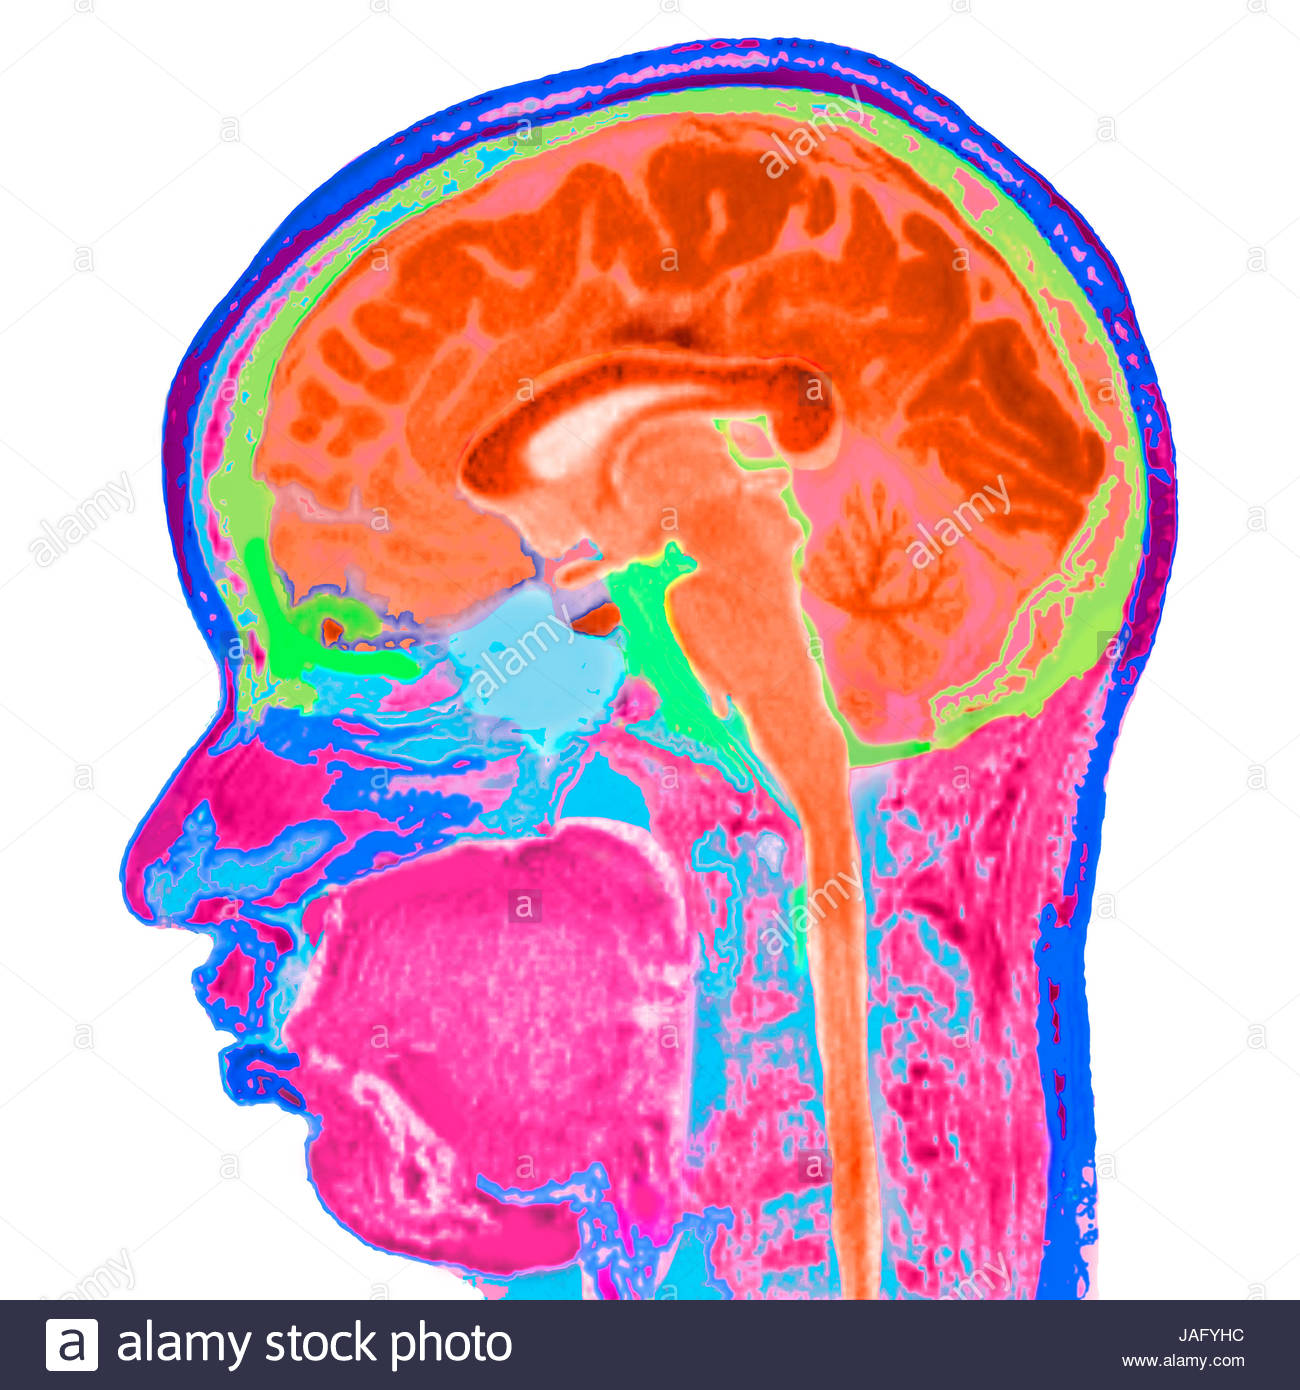 False-coloured sagittal view of an MRI scan of a human head and ...